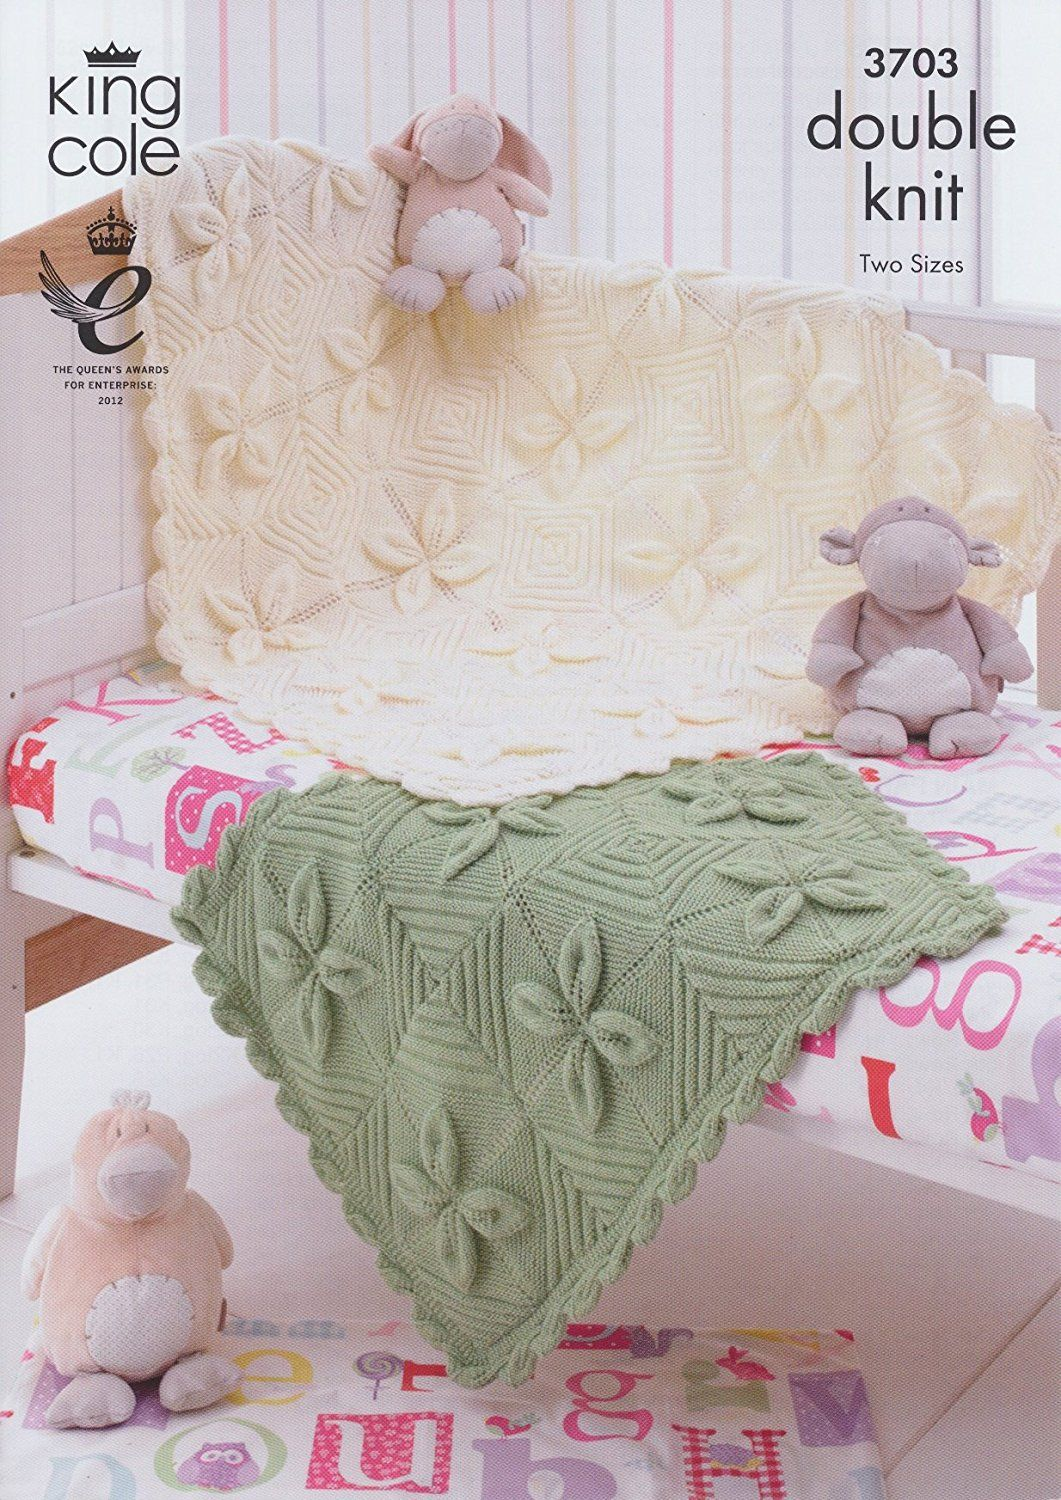 King cole dk baby double knitting pattern babies pram cot king cole dk baby double knitting pattern babies pram cot blanket 3703 bankloansurffo Choice Image